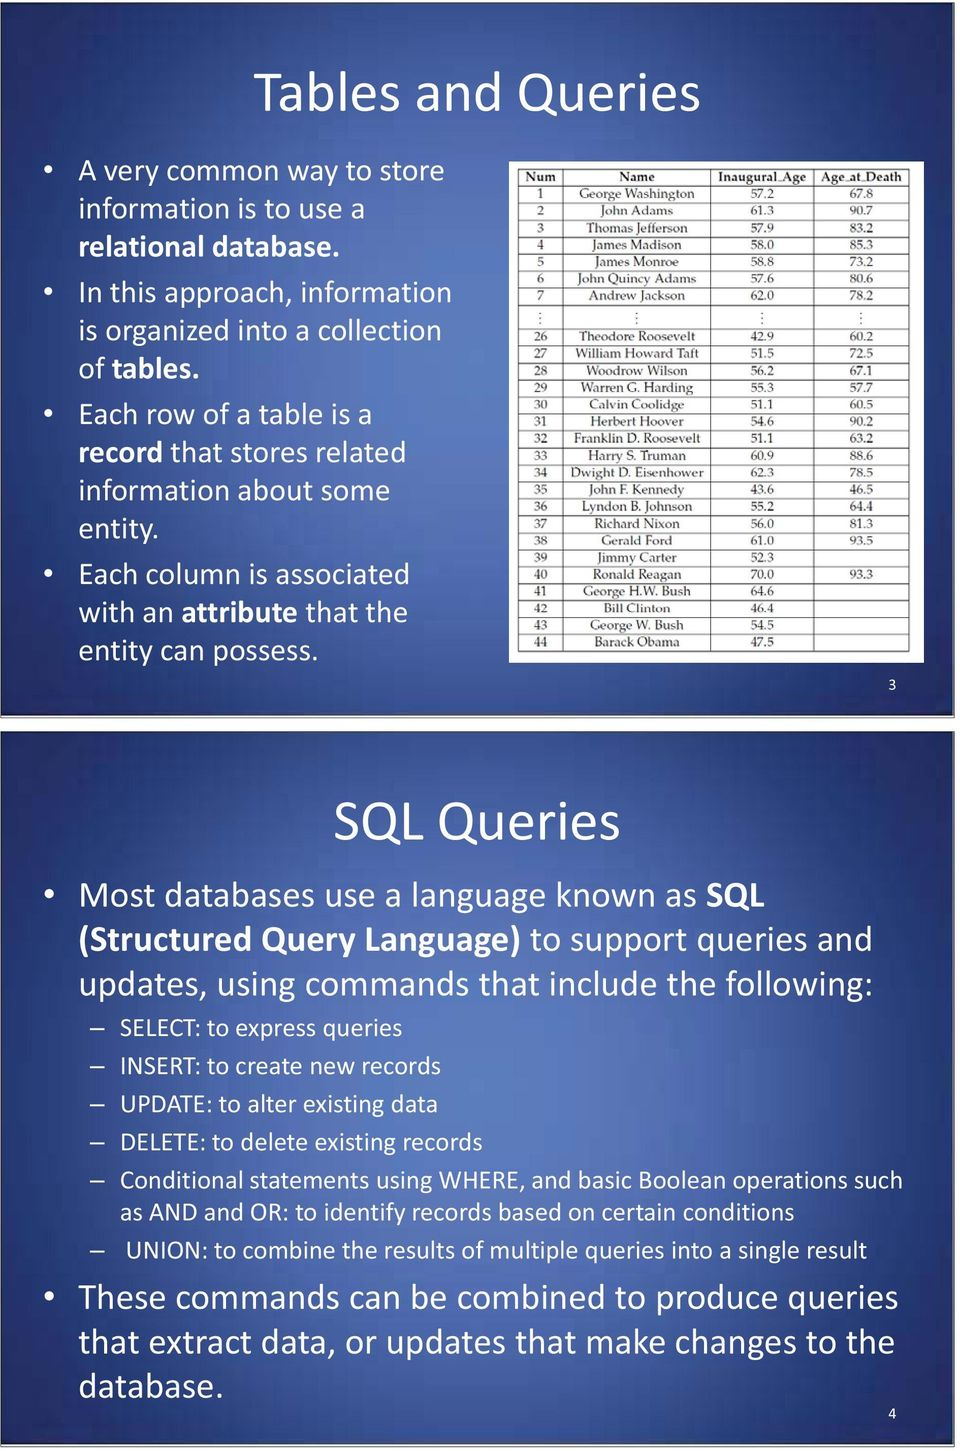 3 SQL Queries Most databases use a language known as SQL (Structured Query Language) to support queries and updates, using commands that include the following: SELECT: to express queries INSERT: to